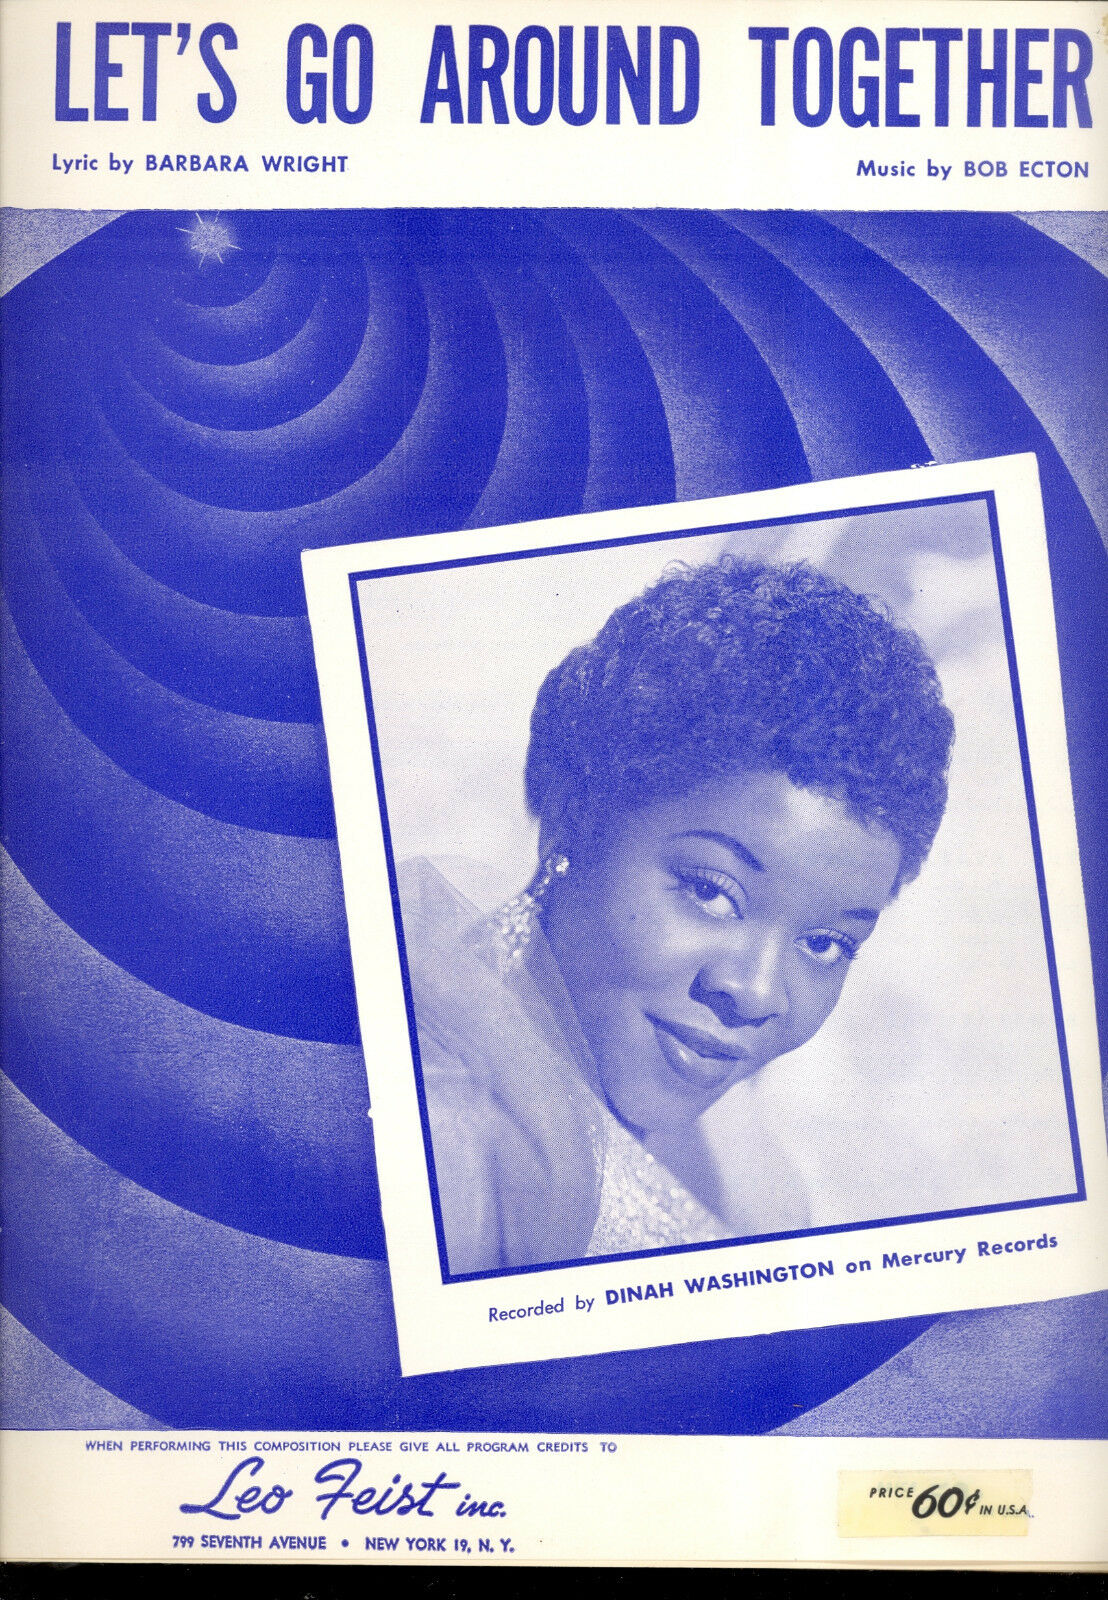 DINAH WASHINGTON Sheet Music  Let's Go Around Together  1955